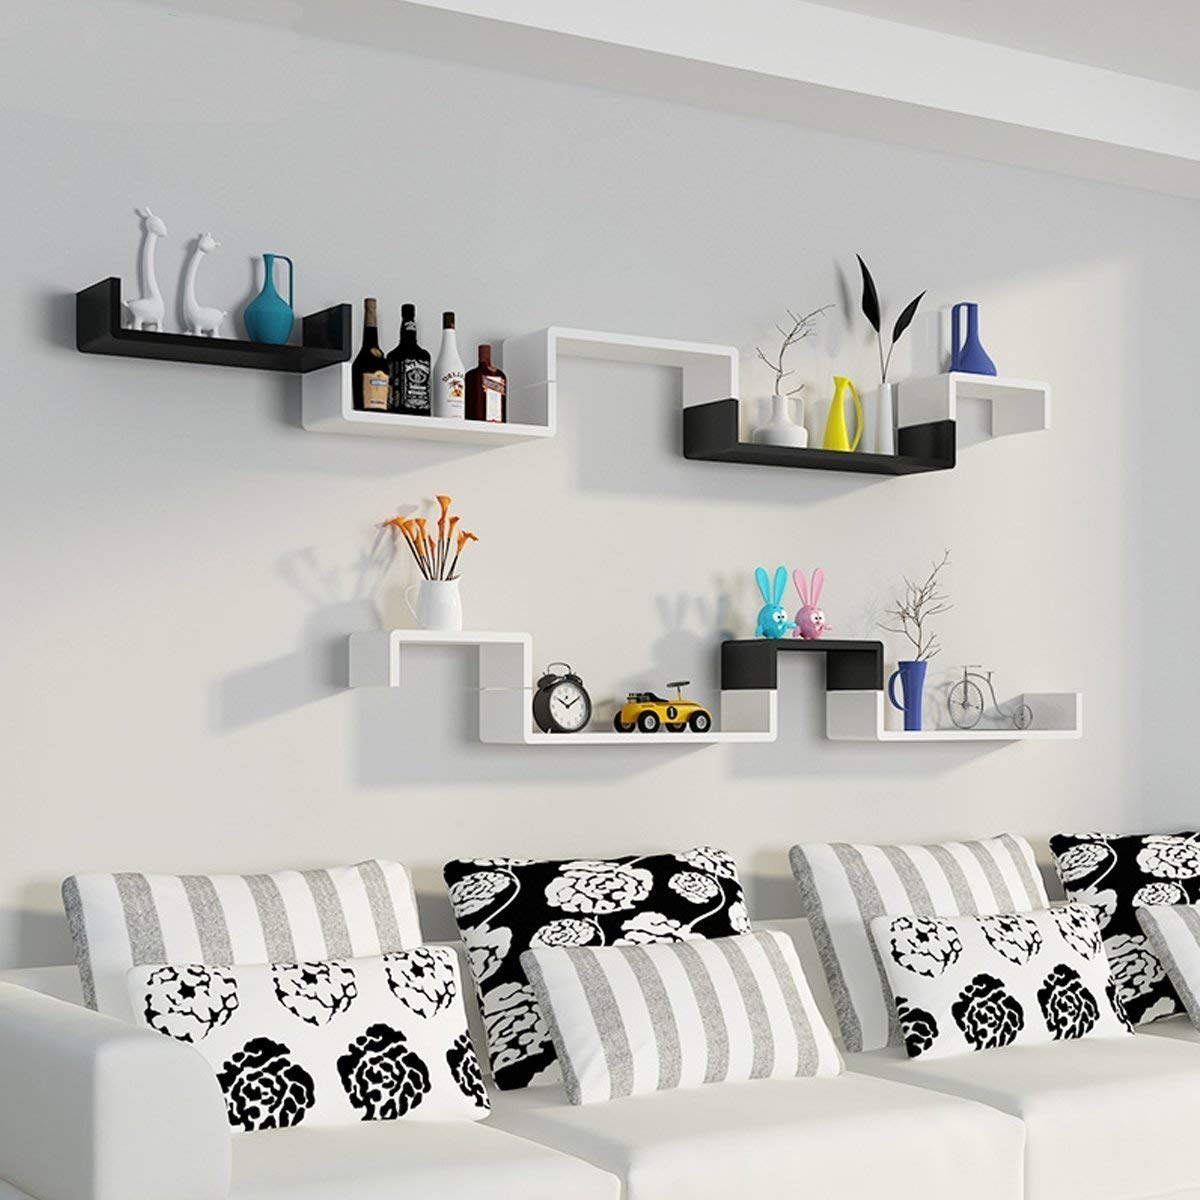 Floating Shelves Wall Mounted Set of 3 by Homevol